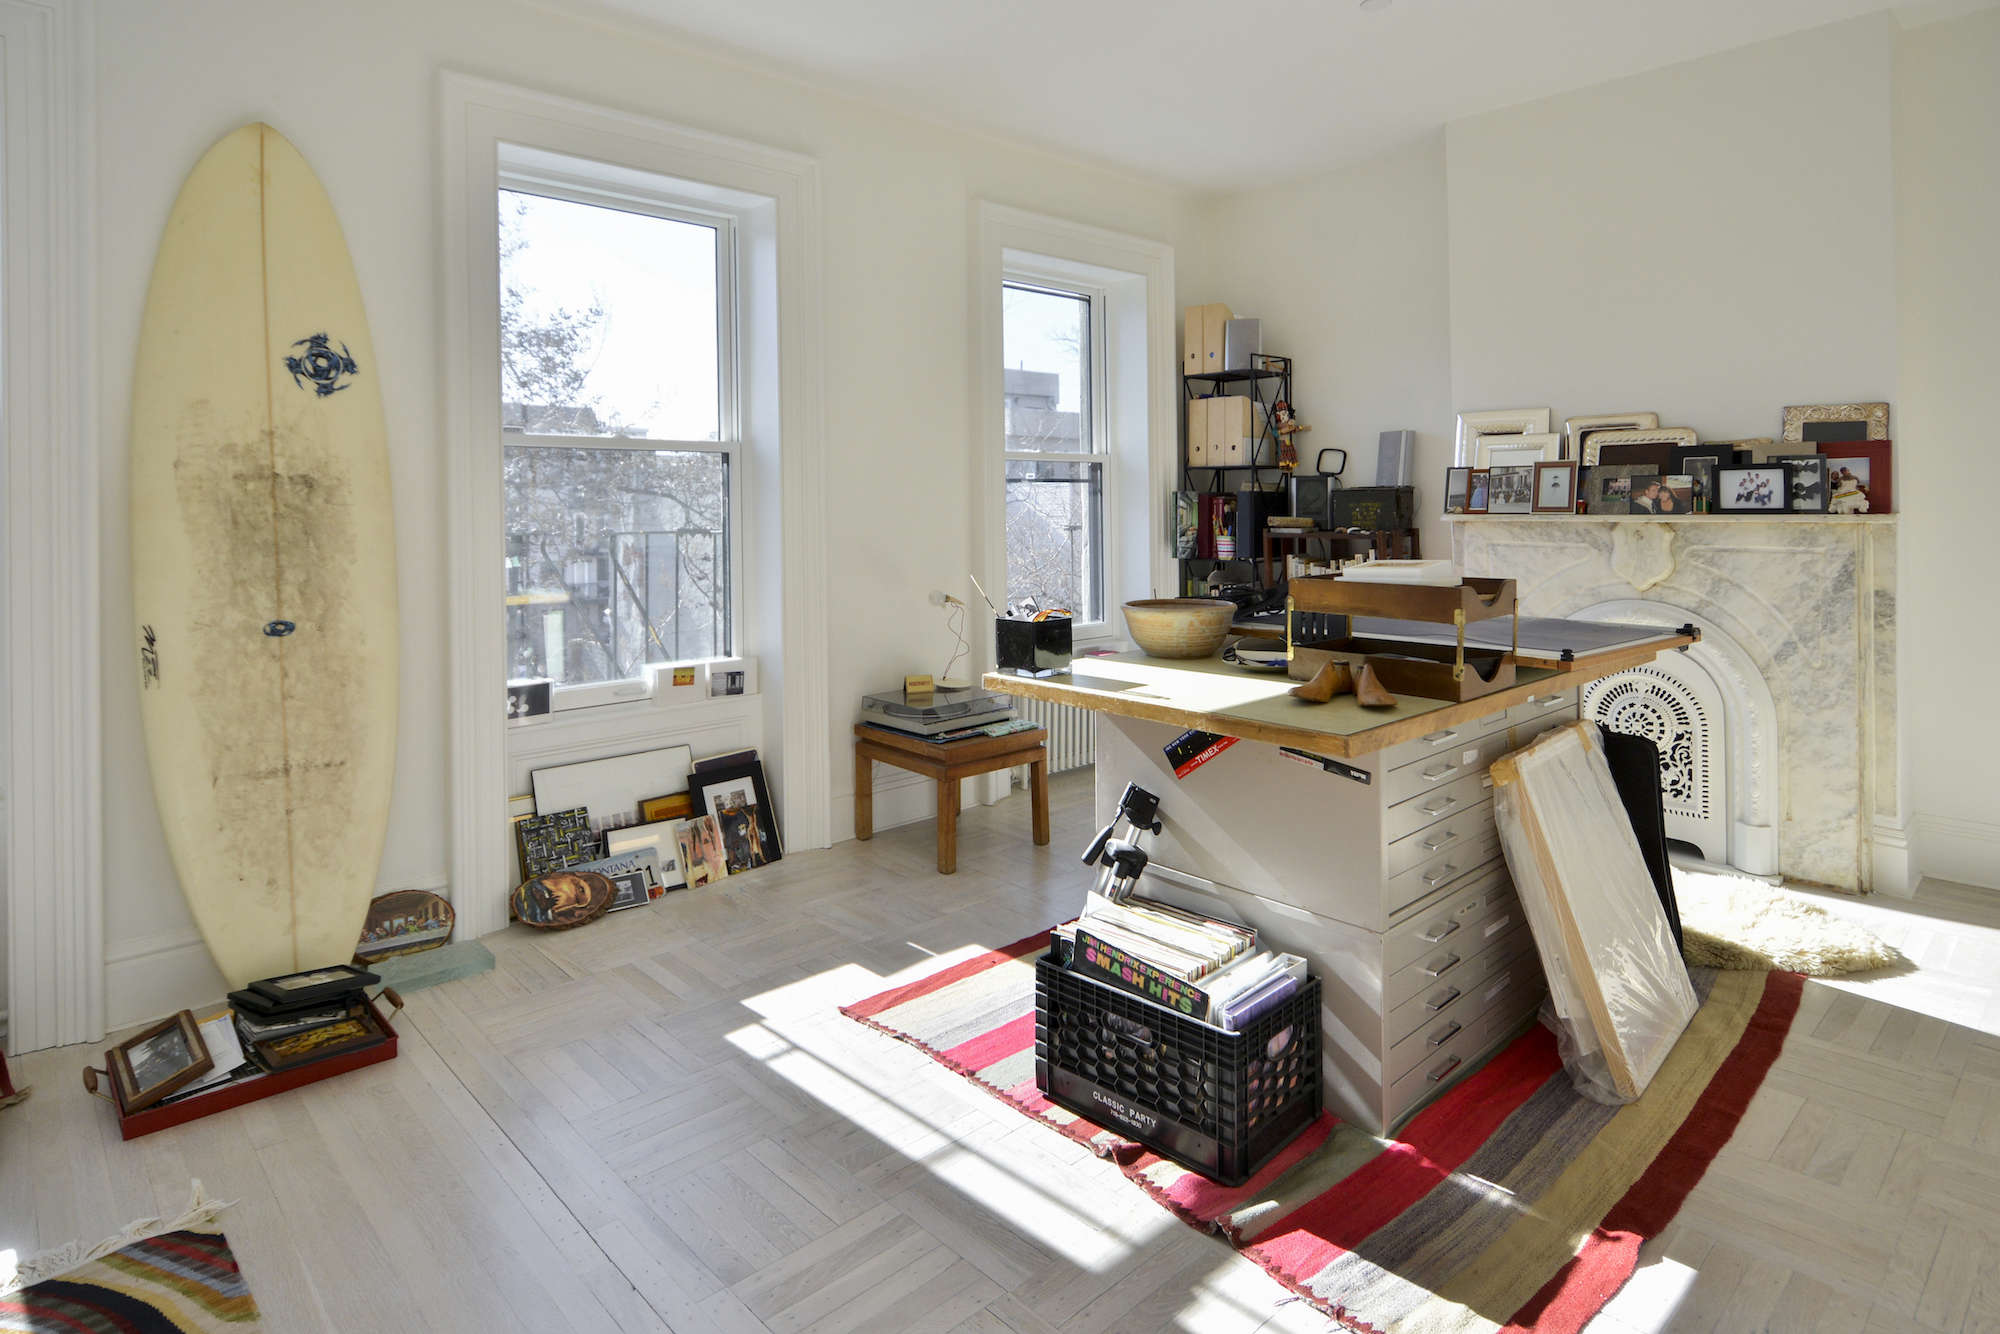 architects gregory merkel and catalina rojas's top floor workroom in their remo 24